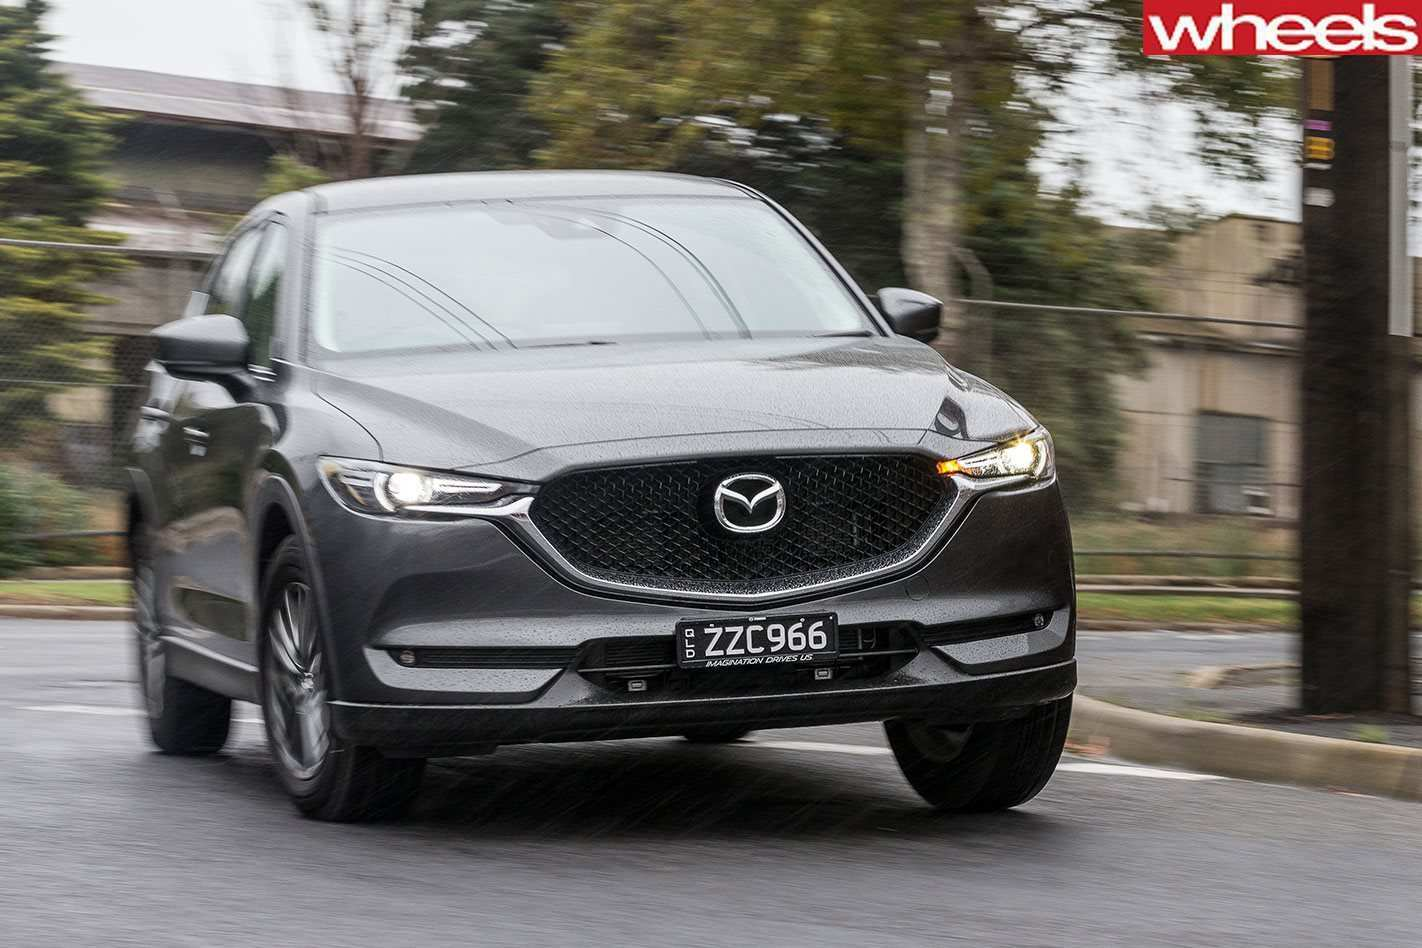 12 Gallery of Best Mazda Cx 5 2019 Australia Review And Price Configurations with Best Mazda Cx 5 2019 Australia Review And Price